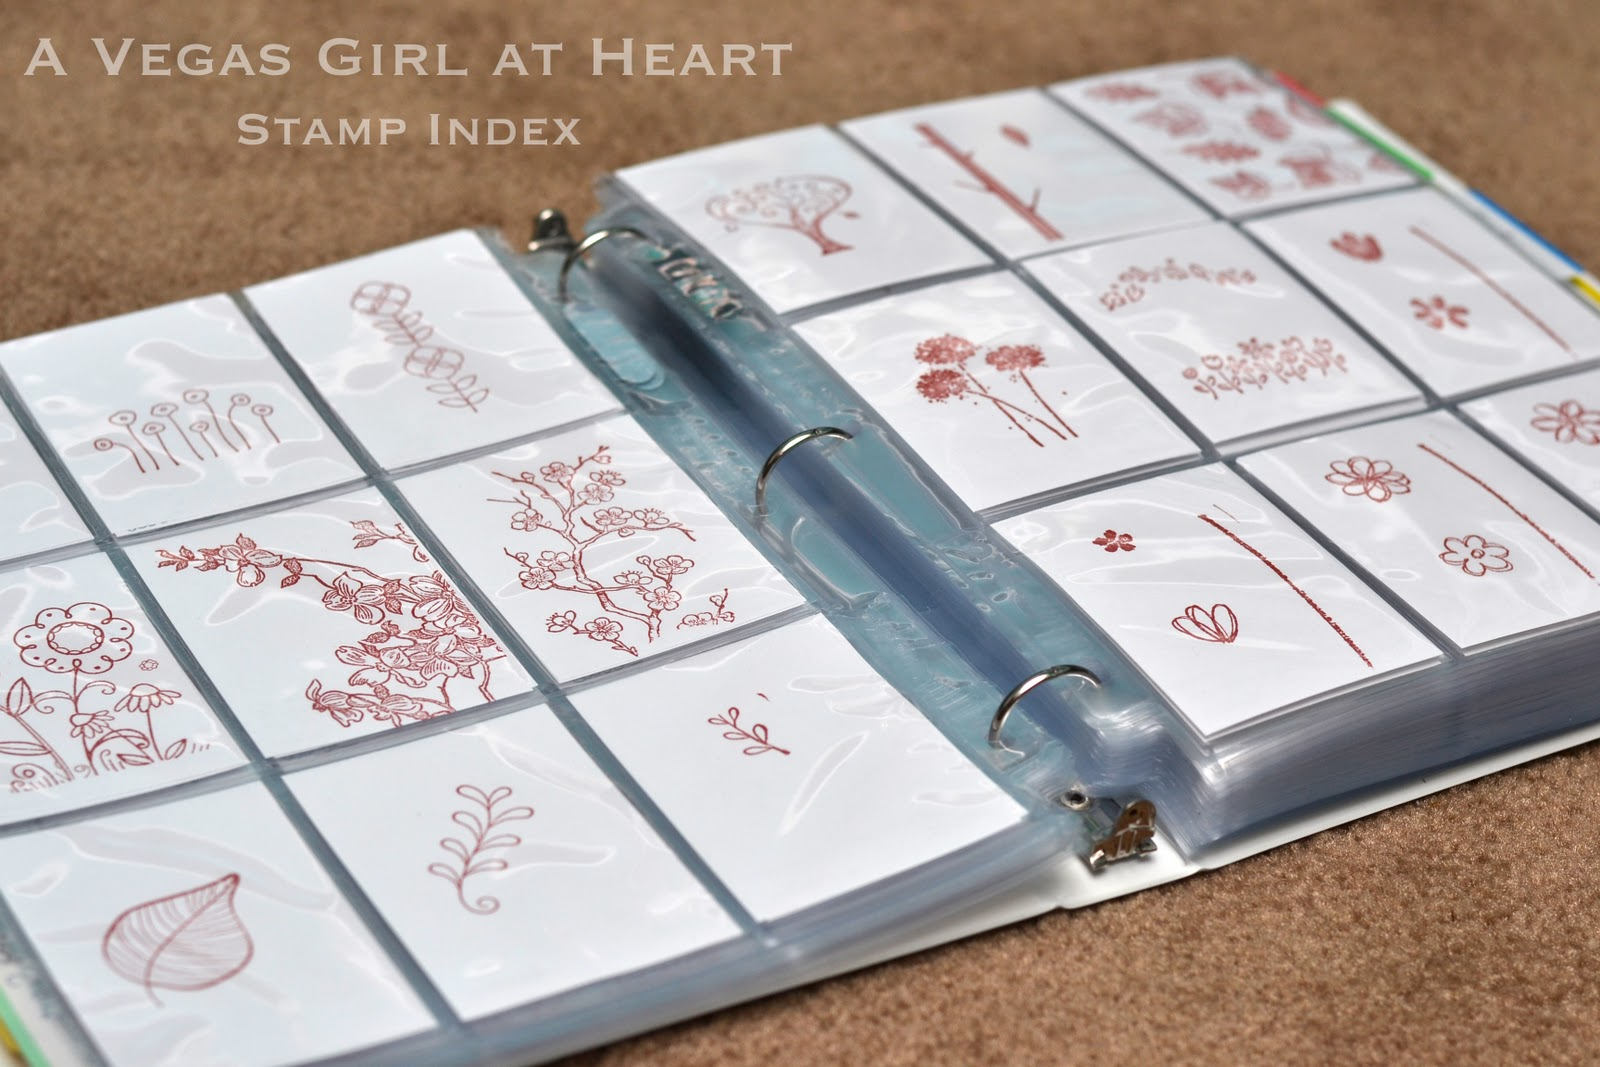 A Vegas Girl At Heart Stamp Index